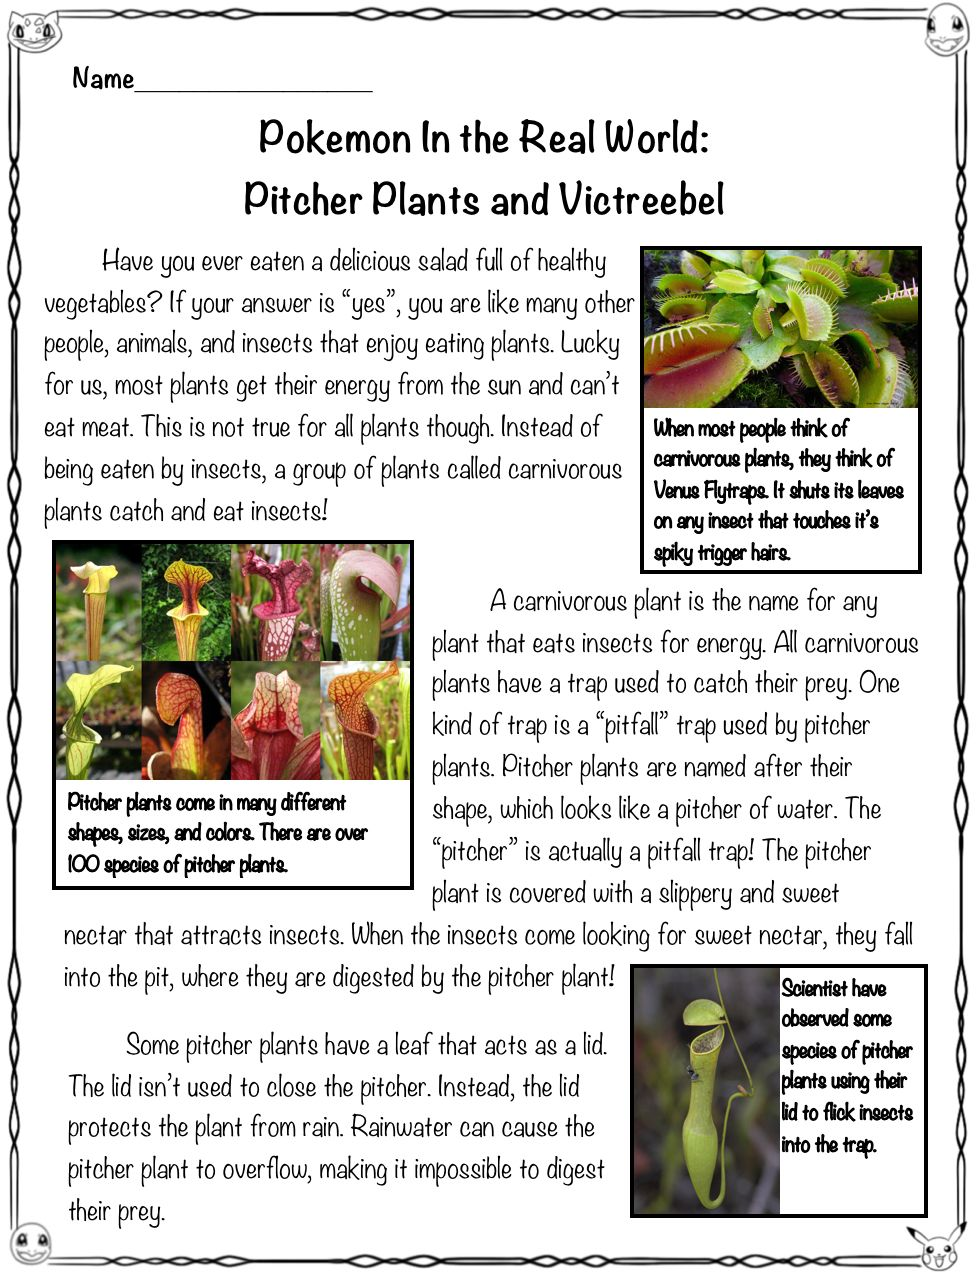 Did You Know That The Pokemon Victreebel Is Based Off Of Real World Carniverous Plants Called Pitcher Plants This High Int Close Reading Pitcher Plant Pokemon [ 1272 x 976 Pixel ]